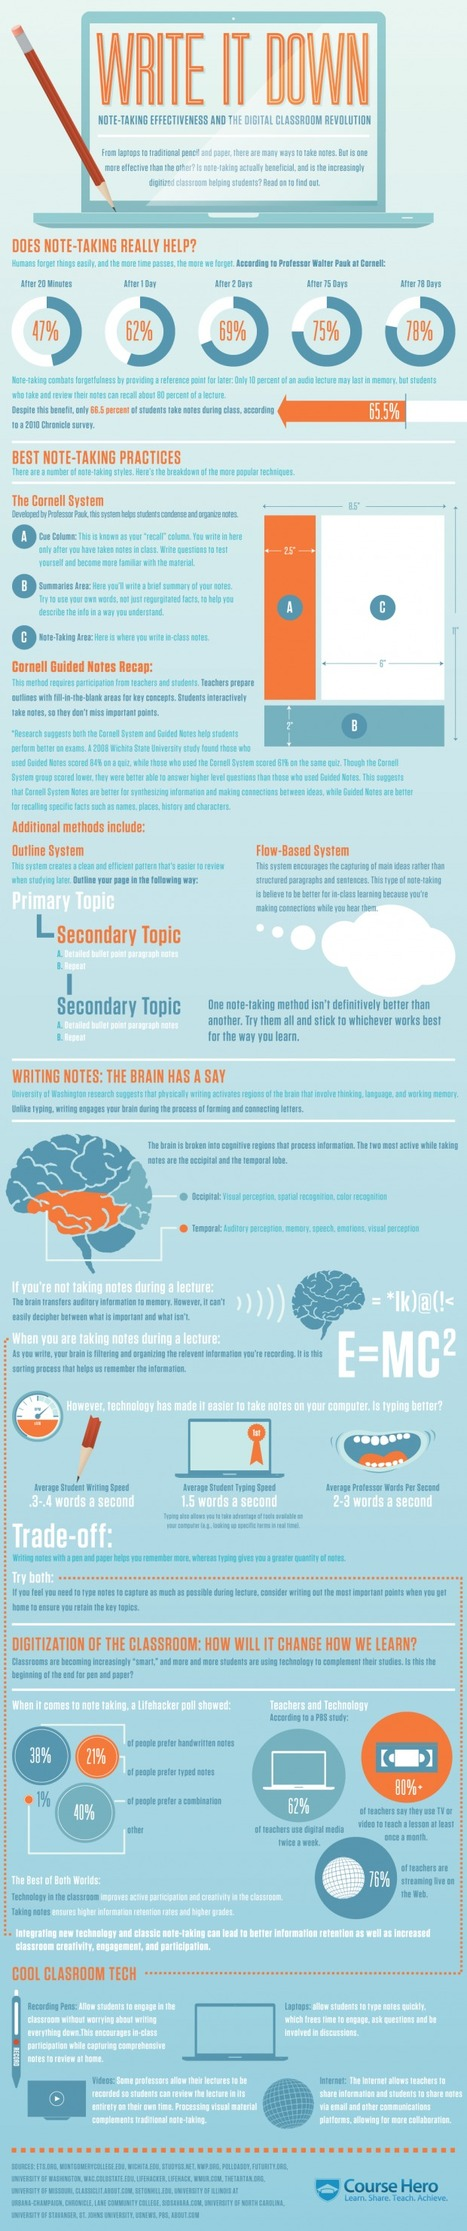 11 Note-Taking Tips For The Digital Classroom | Edudemic | 21st Century tools | Scoop.it